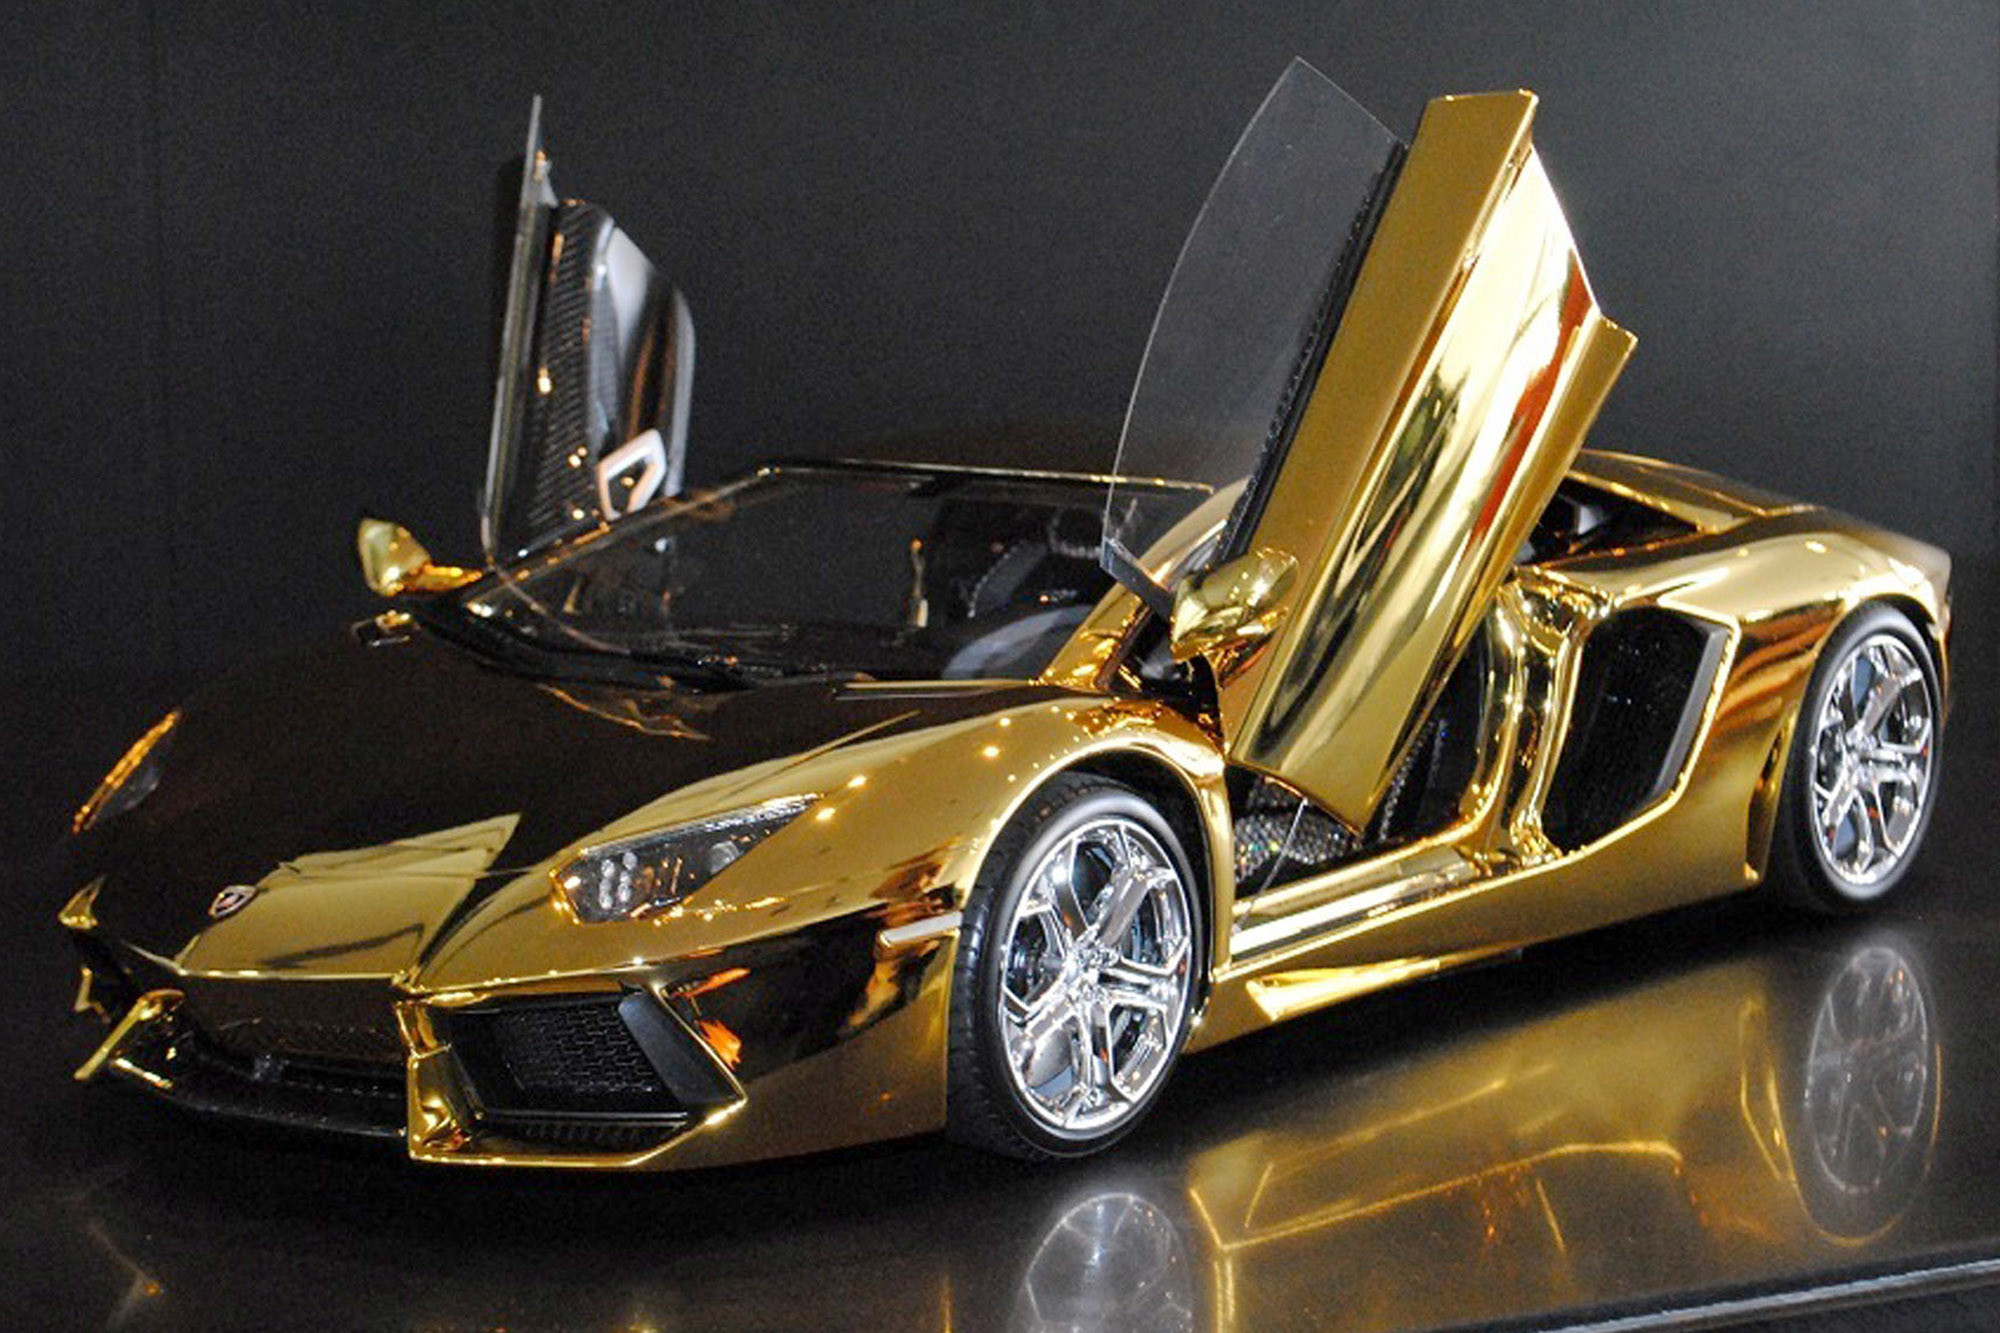 solid gold Lamborghini and 6 other supercars | New York Post